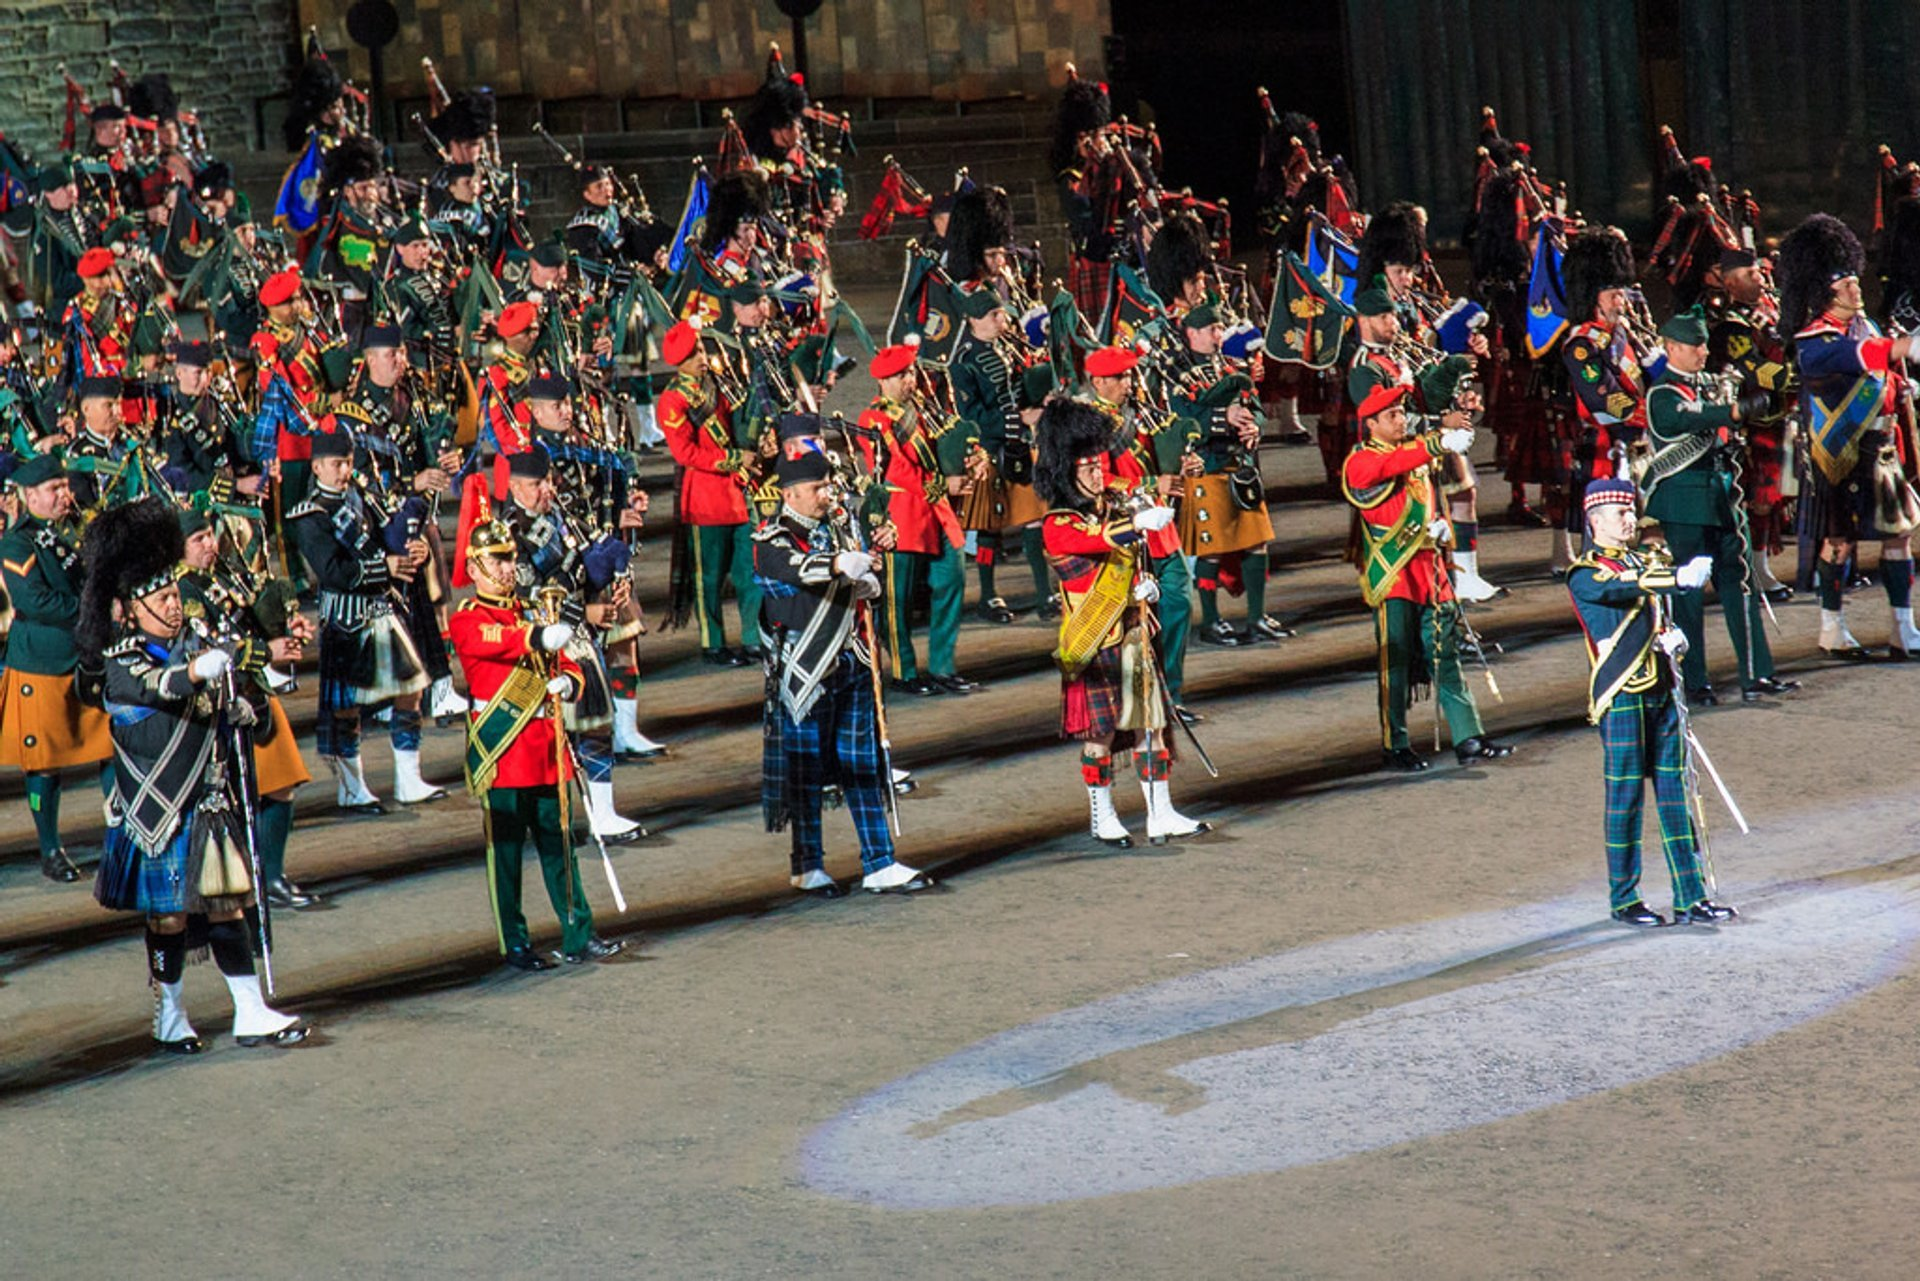 Best time to see Edinburgh Military Tattoo in Edinburgh 2020